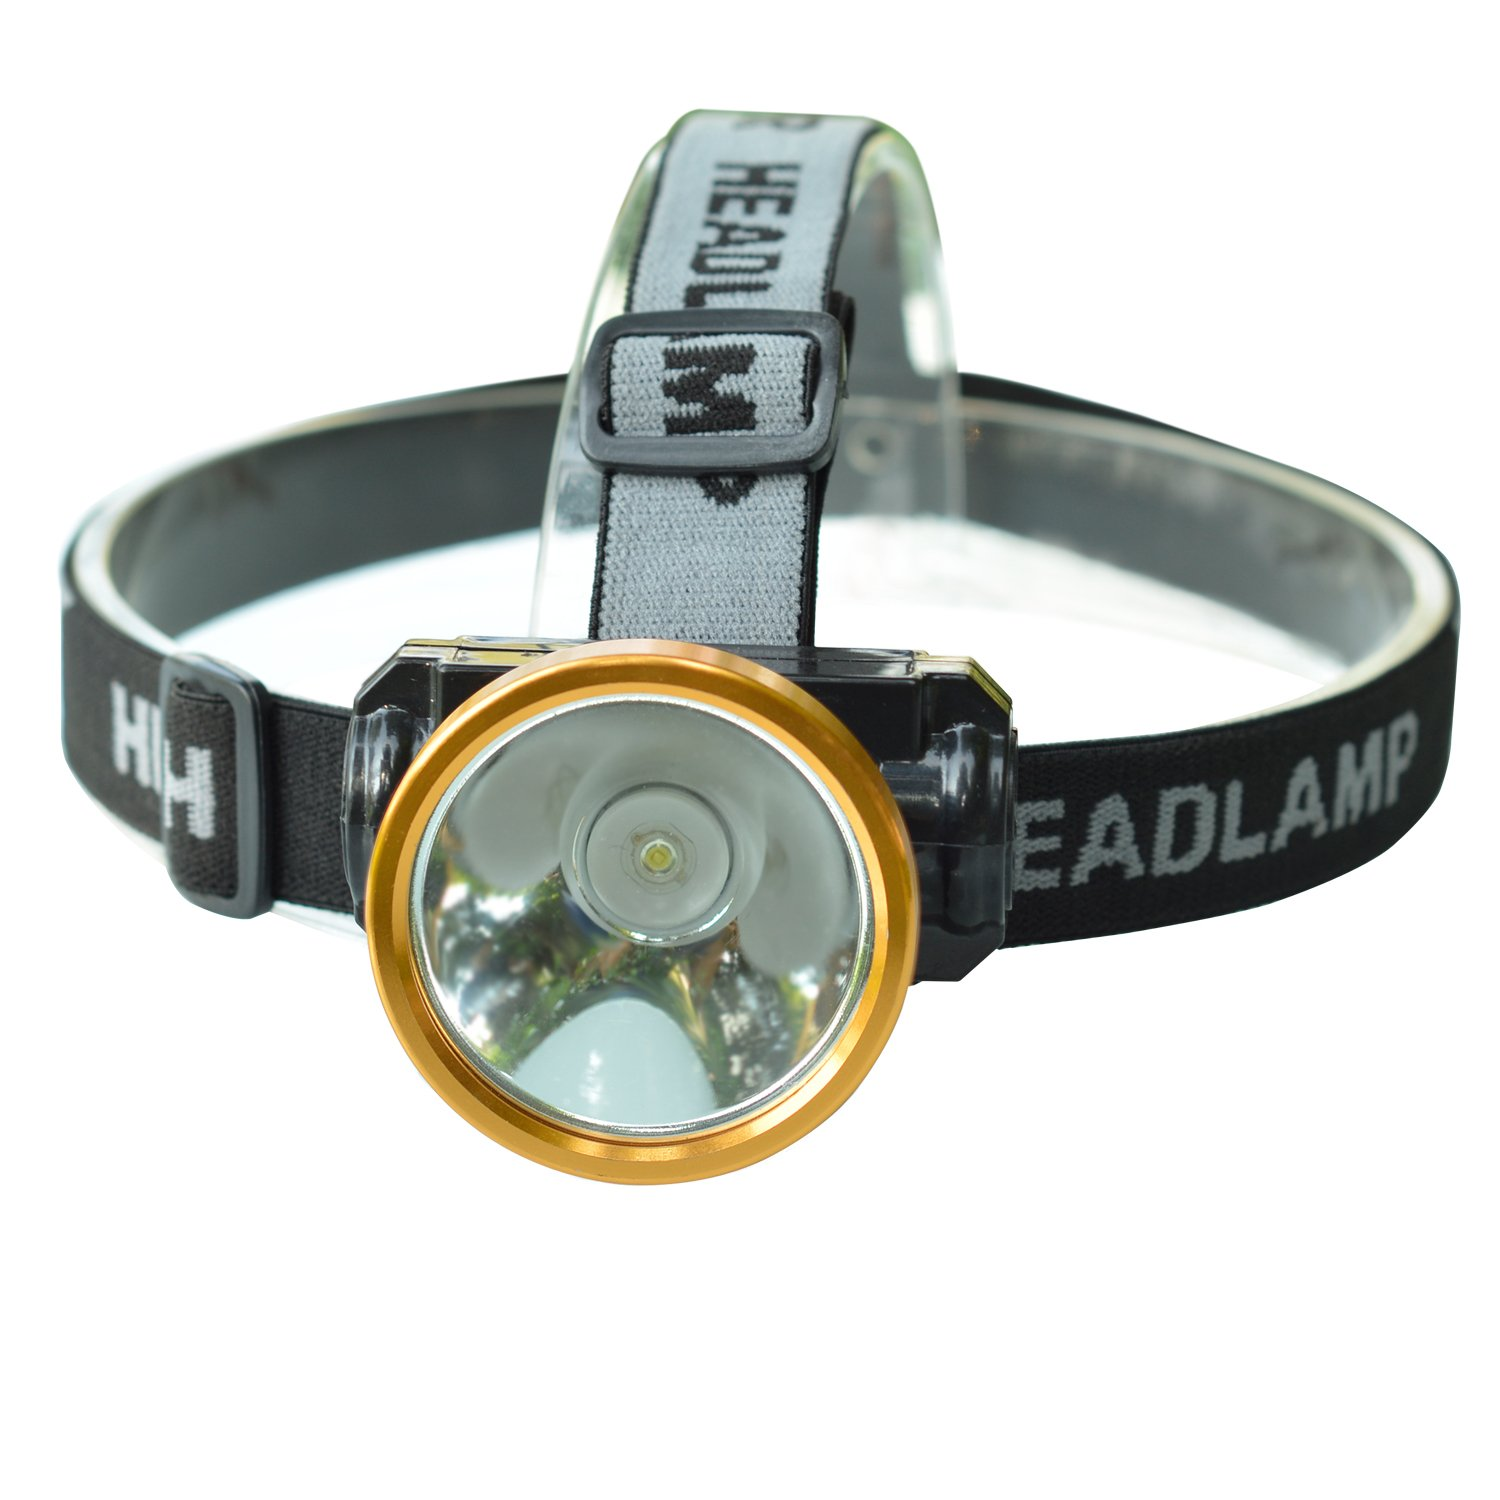 Led Spotlight Headlamp